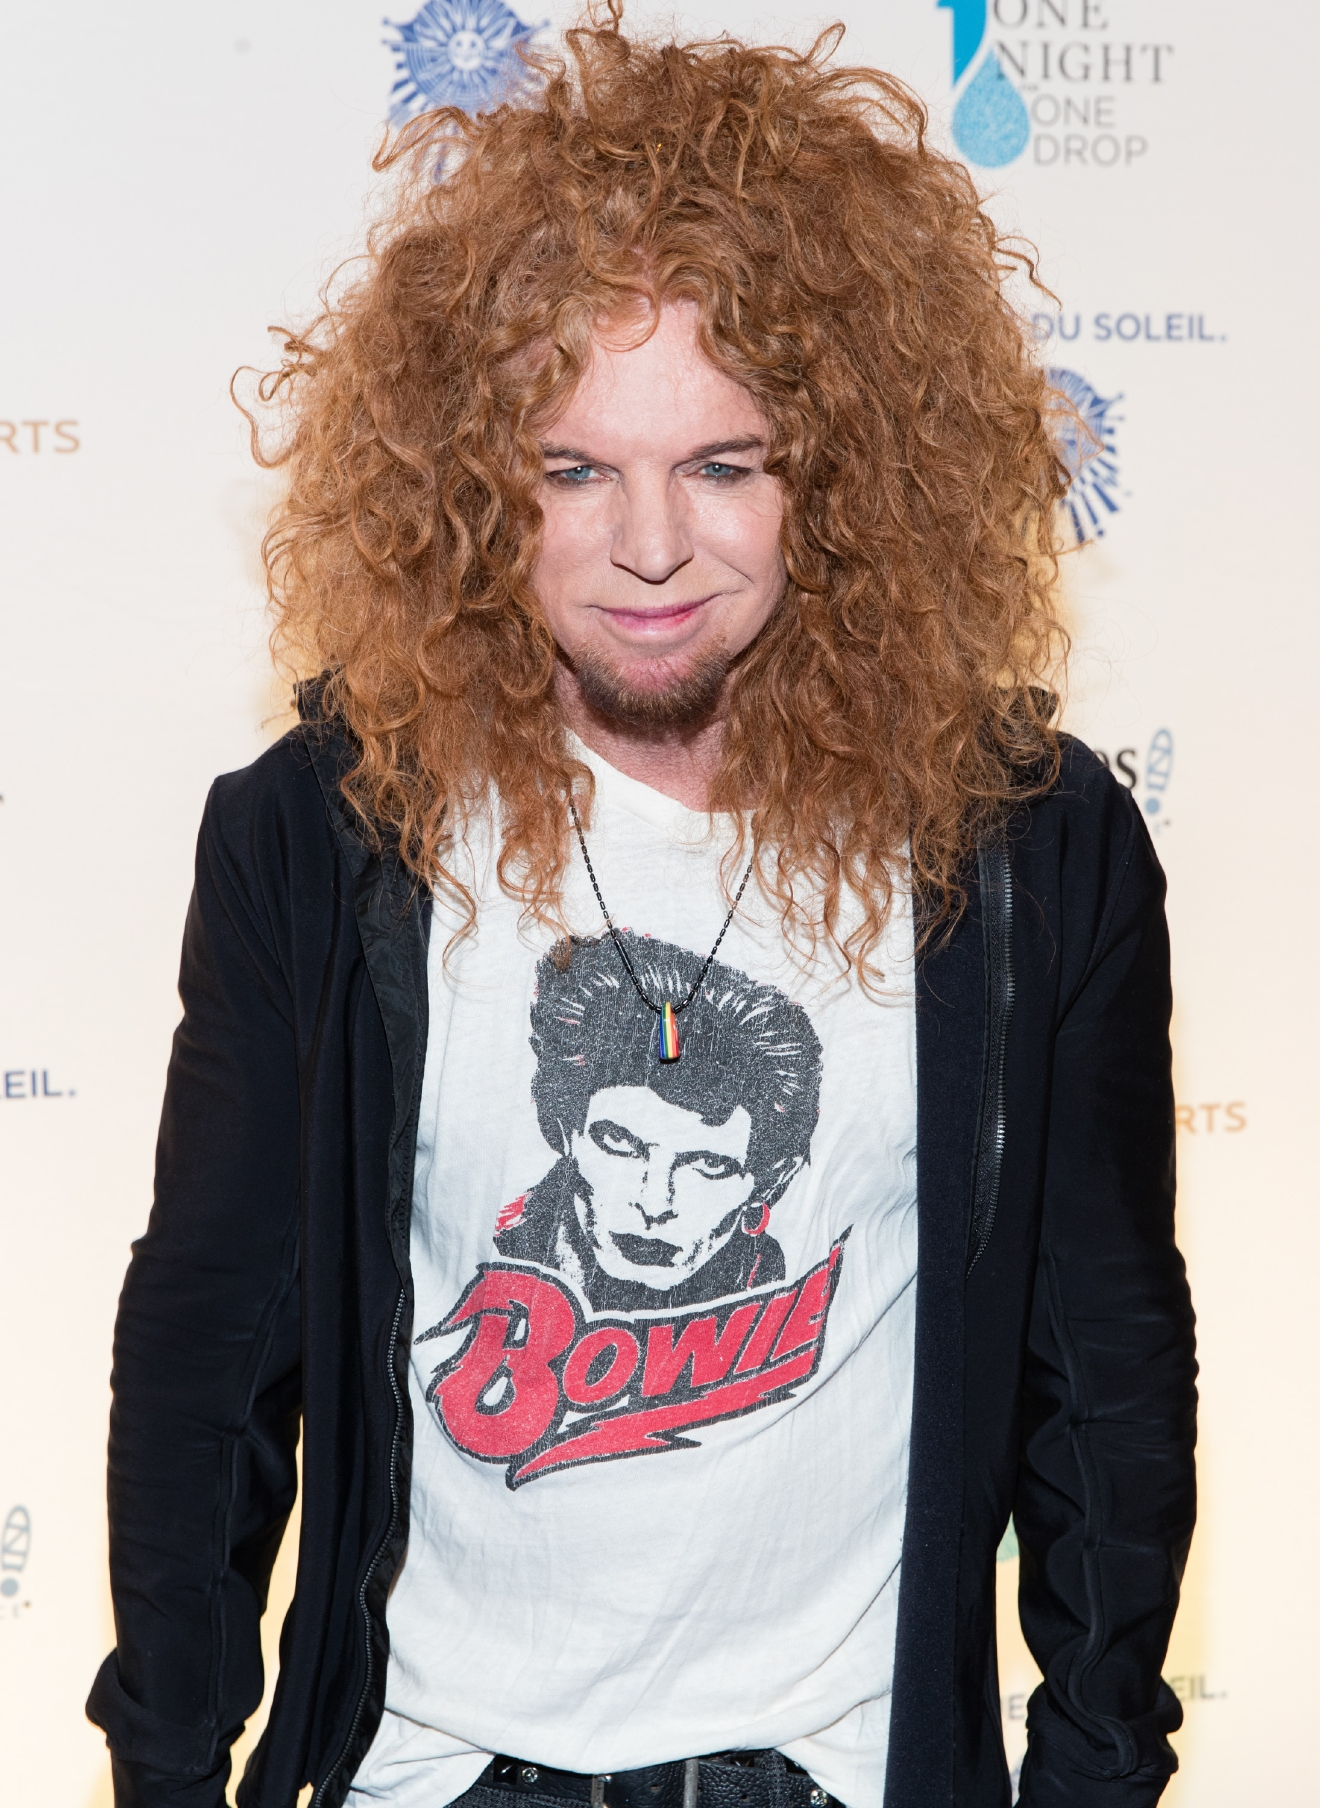 Carrot Top at One Night for One Drop 2017. (Photo courtesy of Erik Kabik/ErikKabik.com)